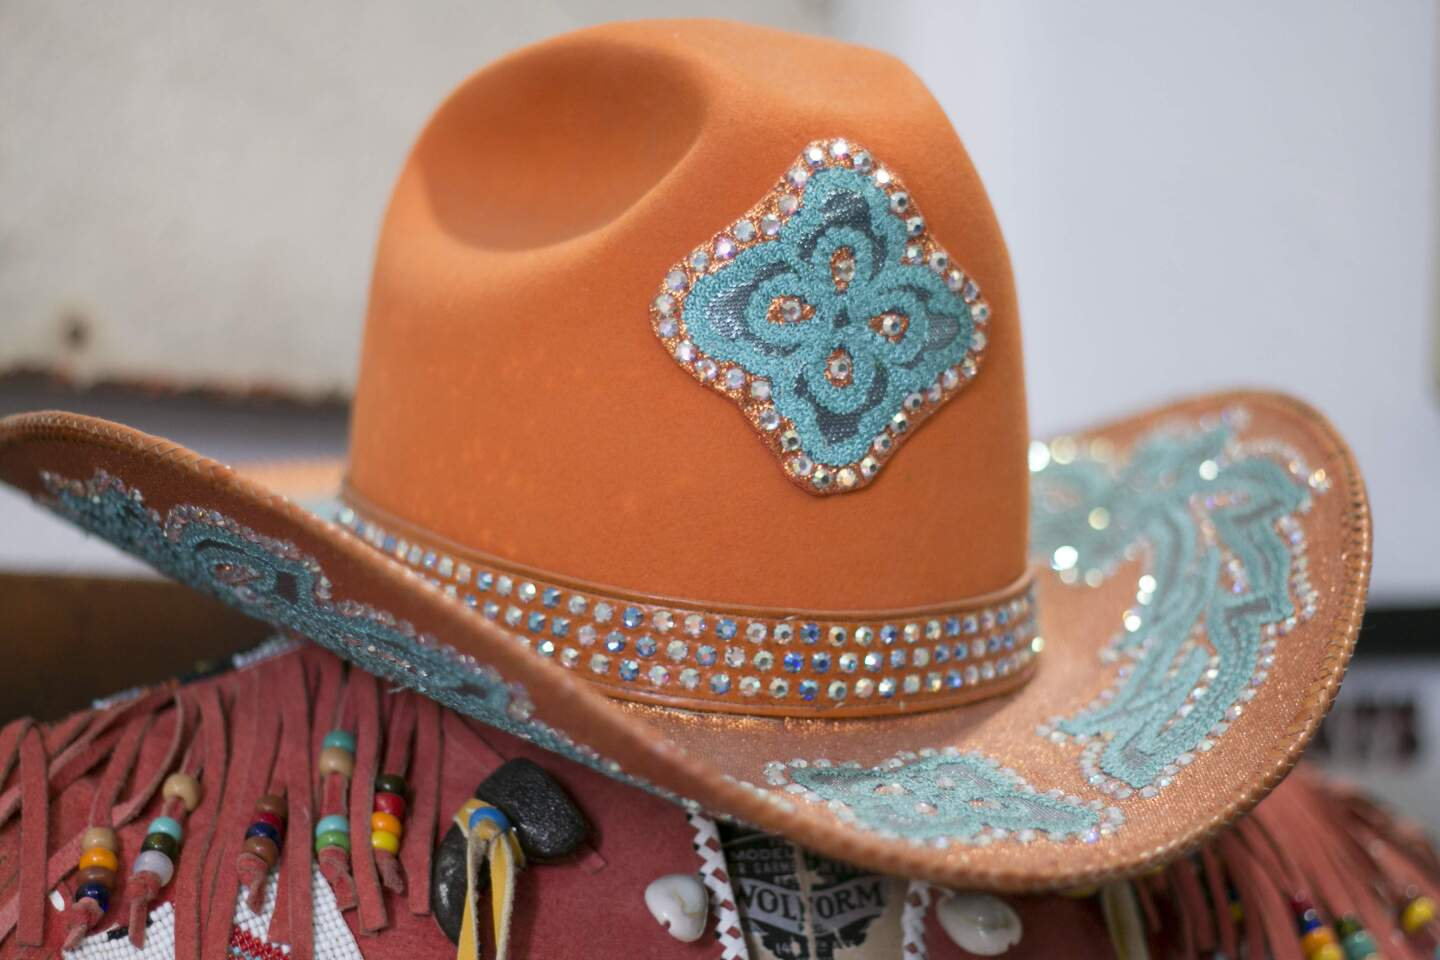 A studded cowboy hat from Nudie's | Carren Jao